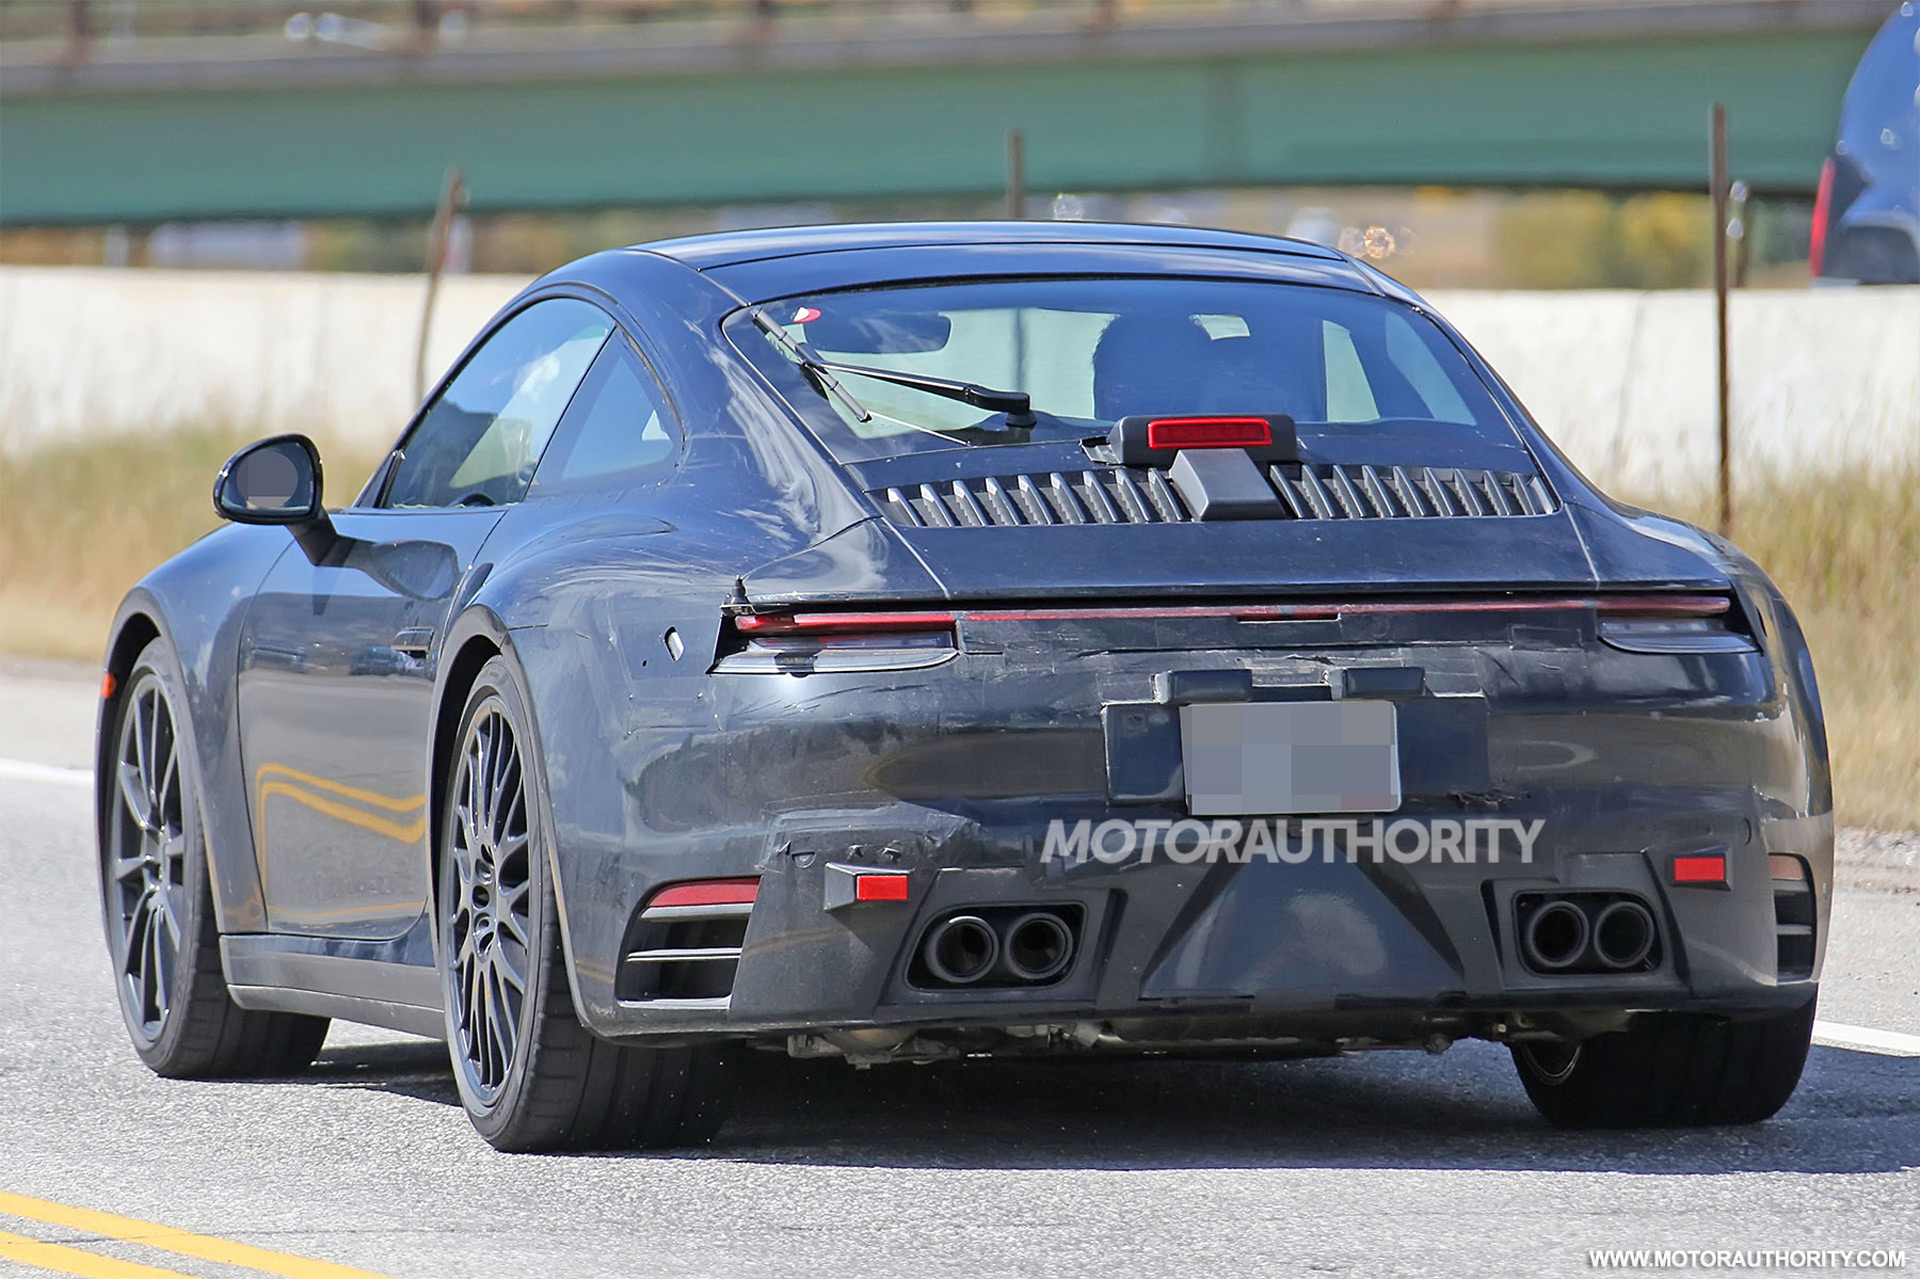 Porsche 911 Spy Shots Nissan Leaf Nismo Gm Electric Car Plans News Headlines